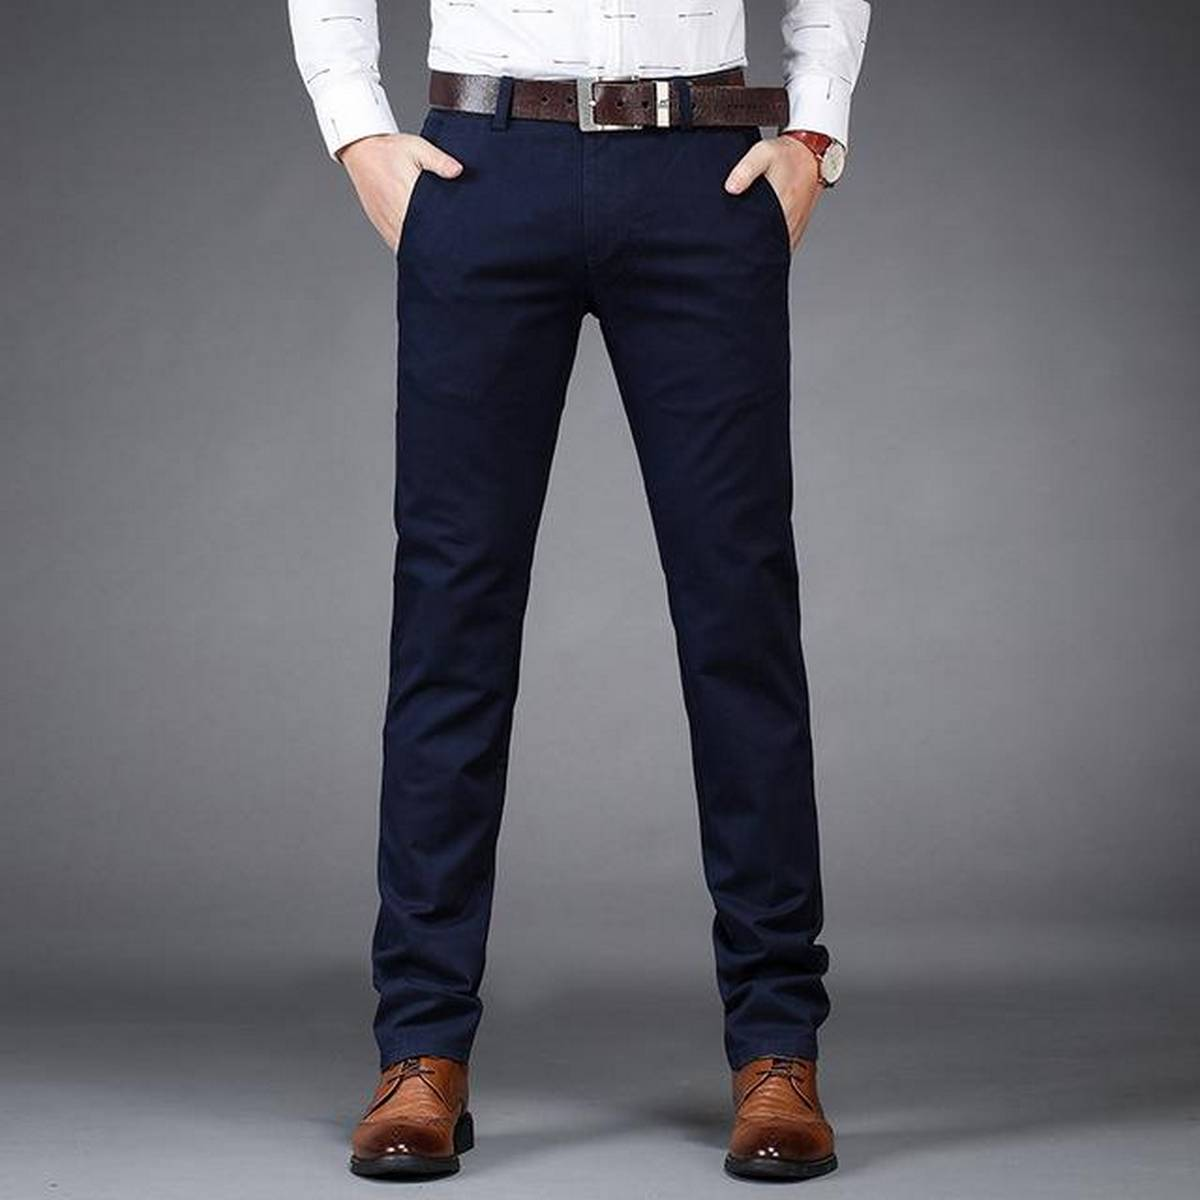 Trending COTTON JEANS Classic BLUE Pants for Boys for Formal & Regular use